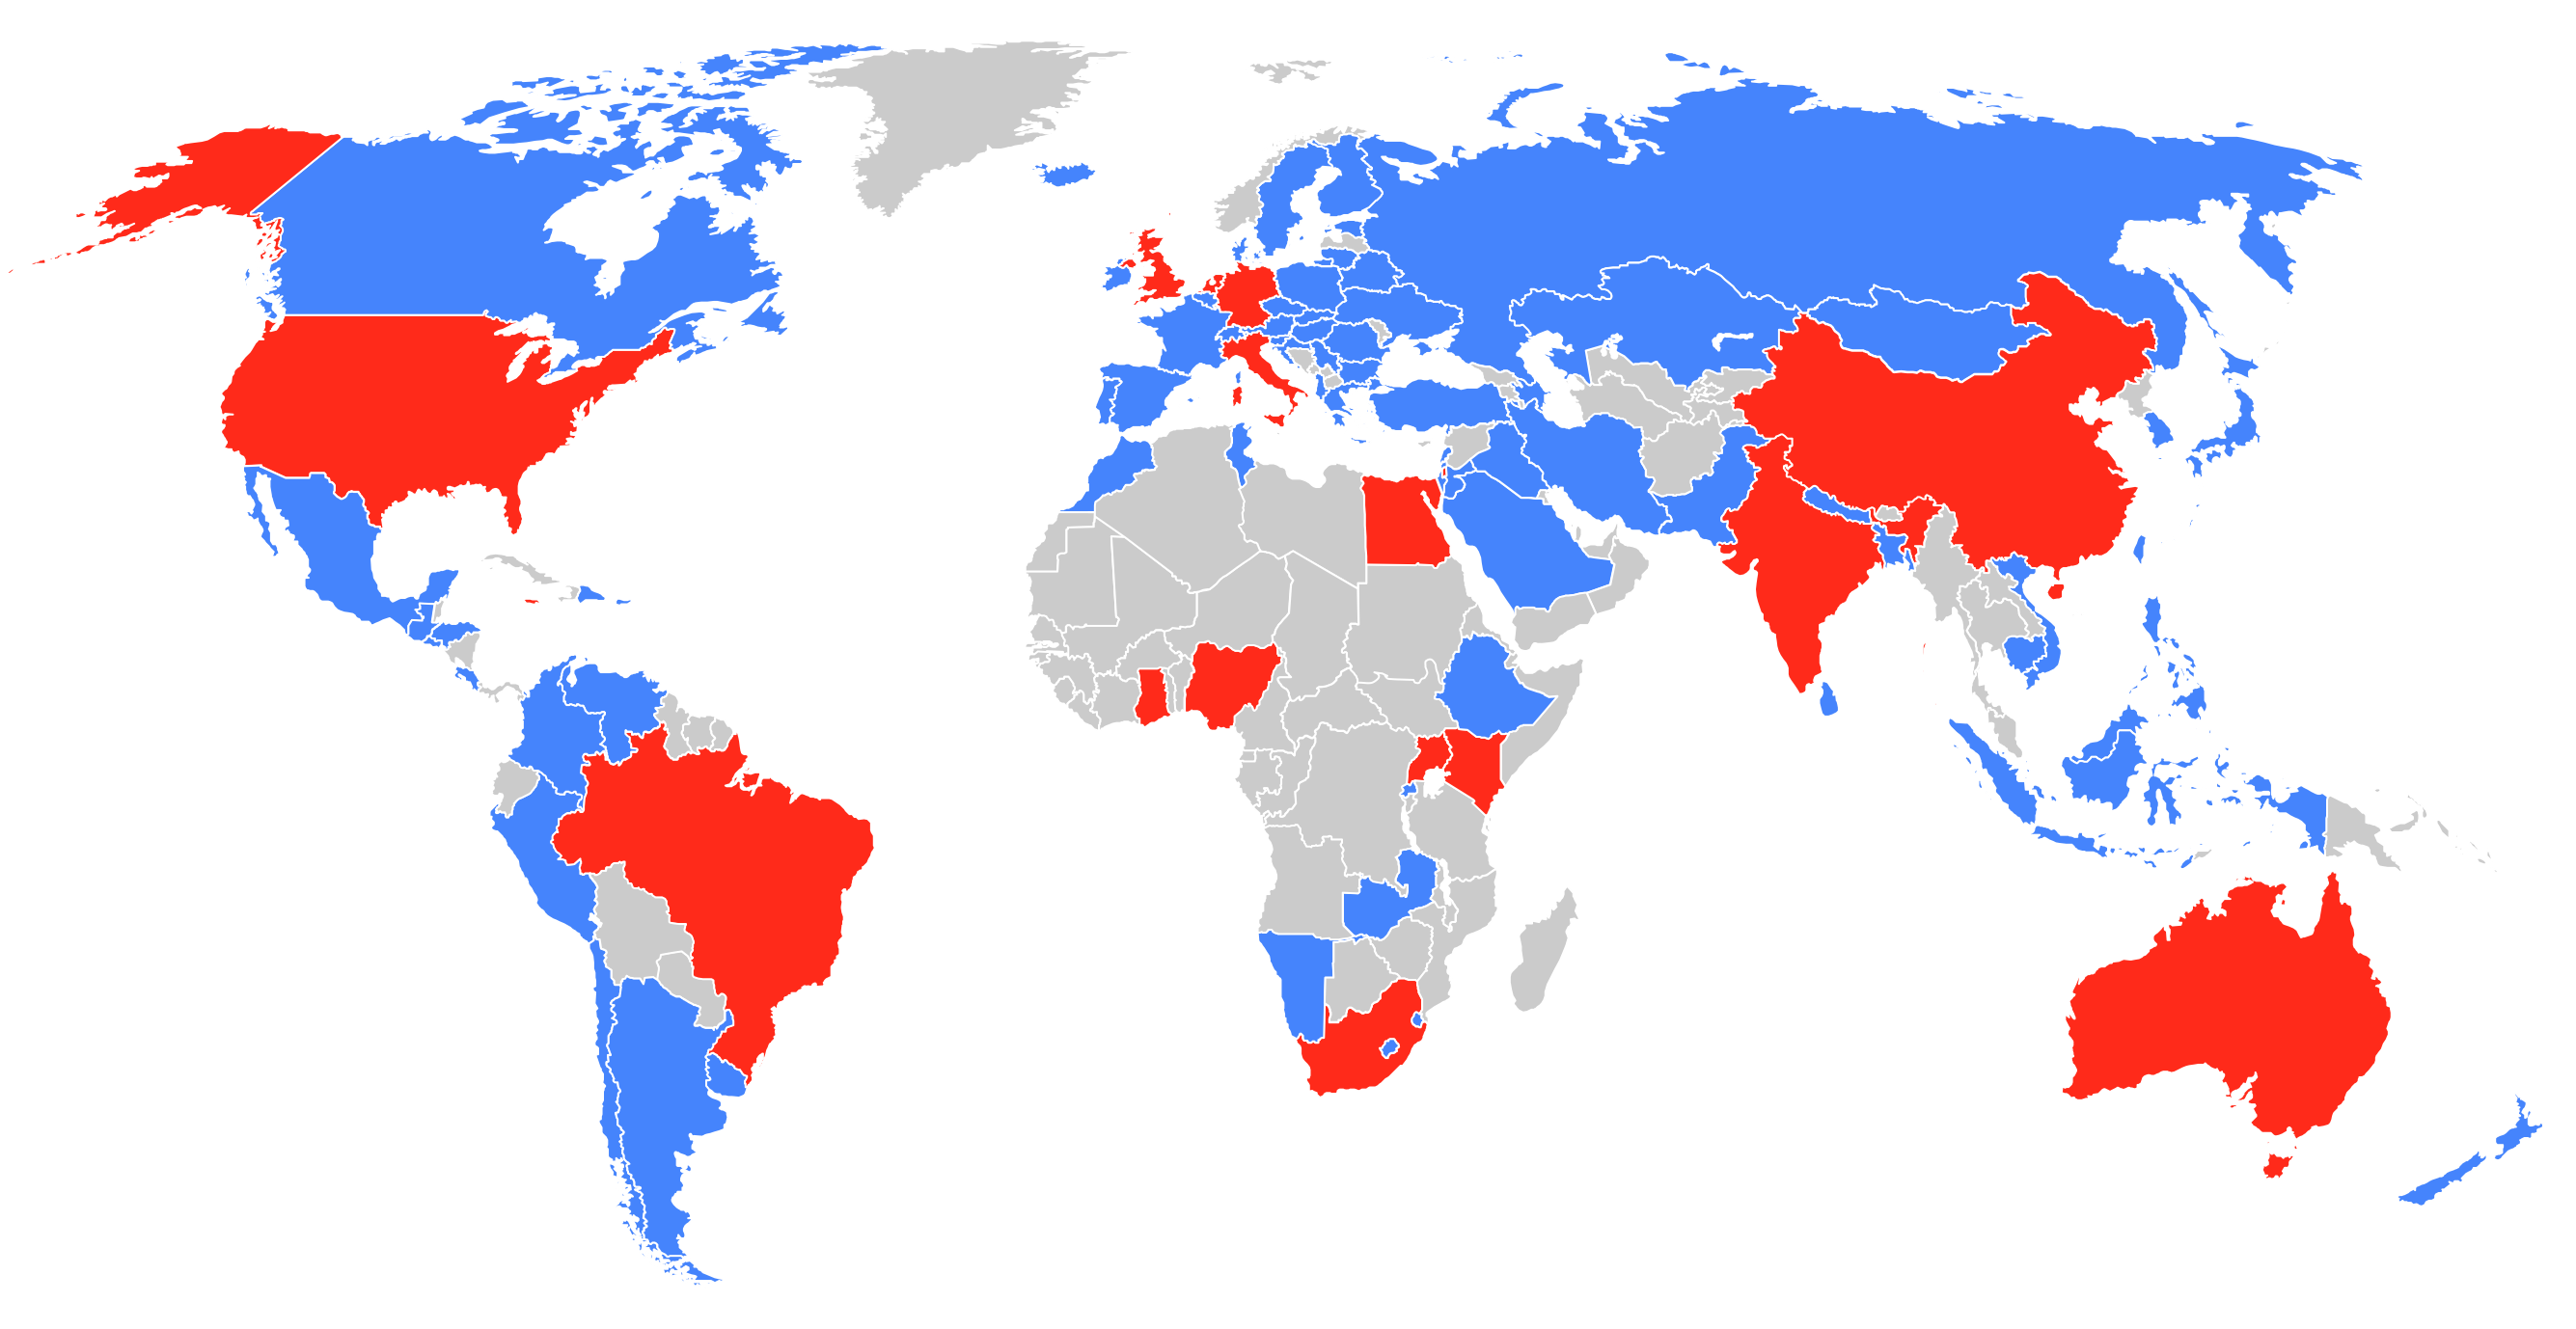 World map highlighting the countries of residence of CopyrightX participants